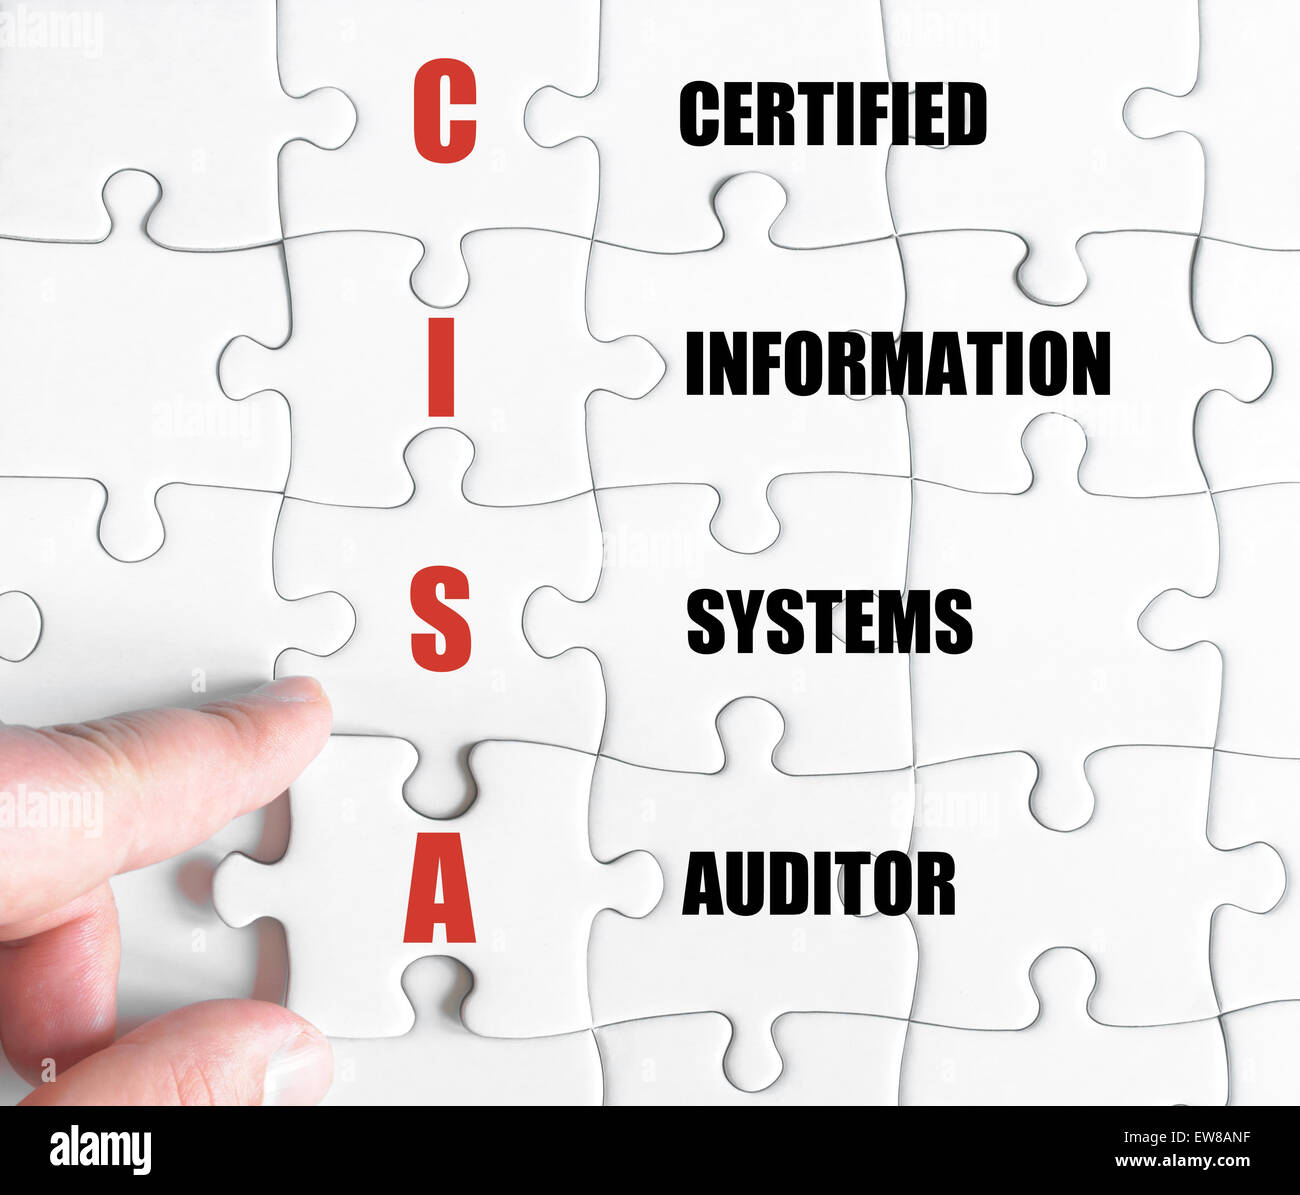 Concept image of Business Acronym CISA as Certified Information Systems Auditor - Stock Image